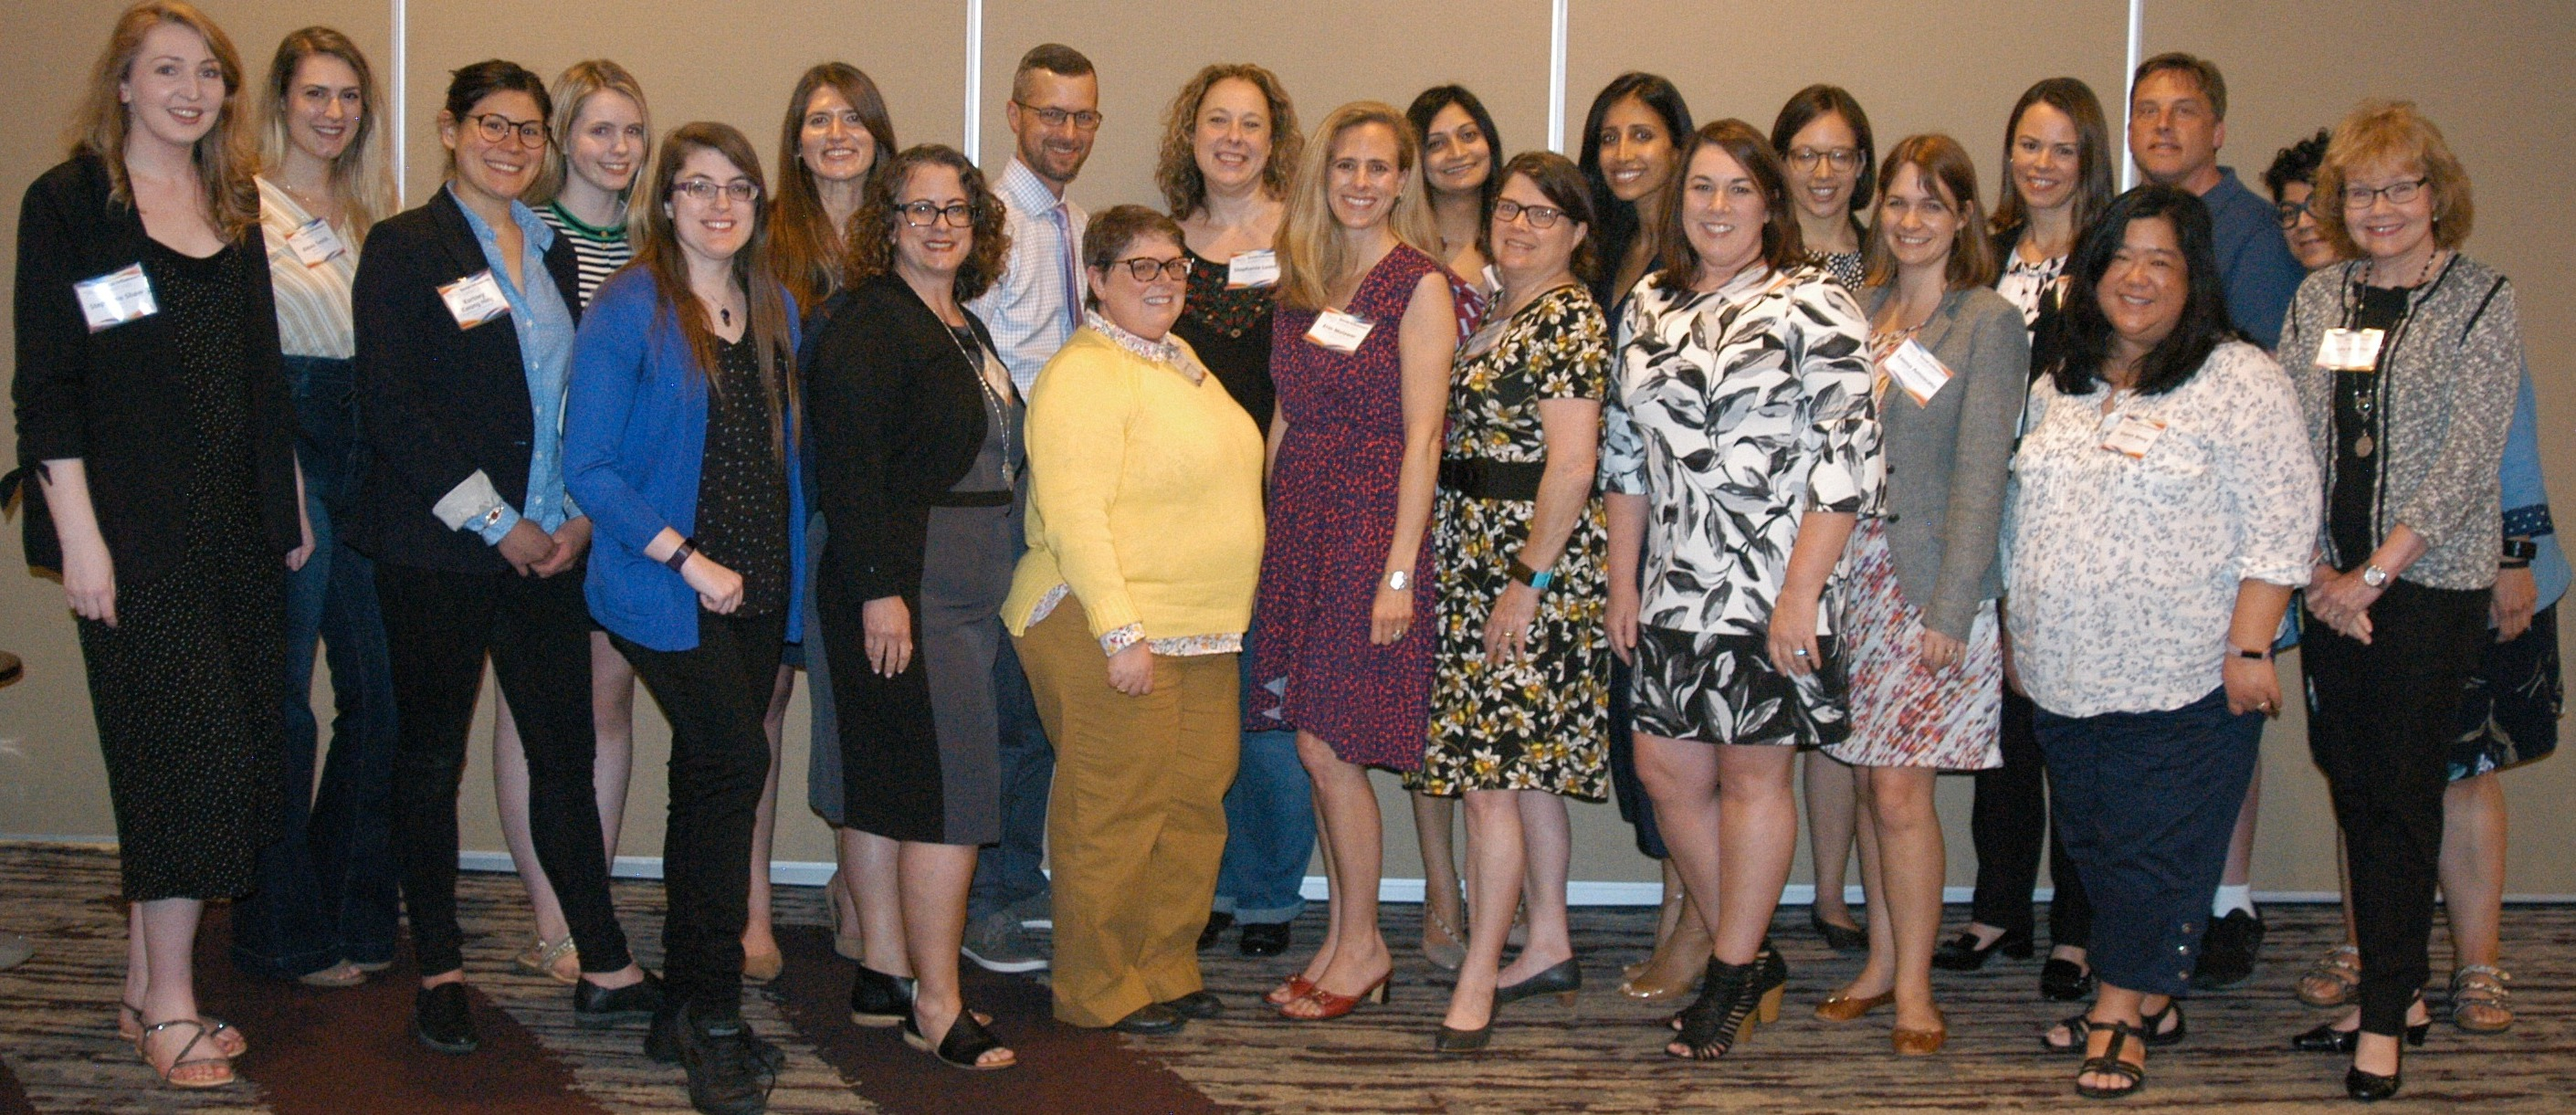 Asthma and Allergy Advocates Gather in Washington, D.C. to Share Resources and Join Forces